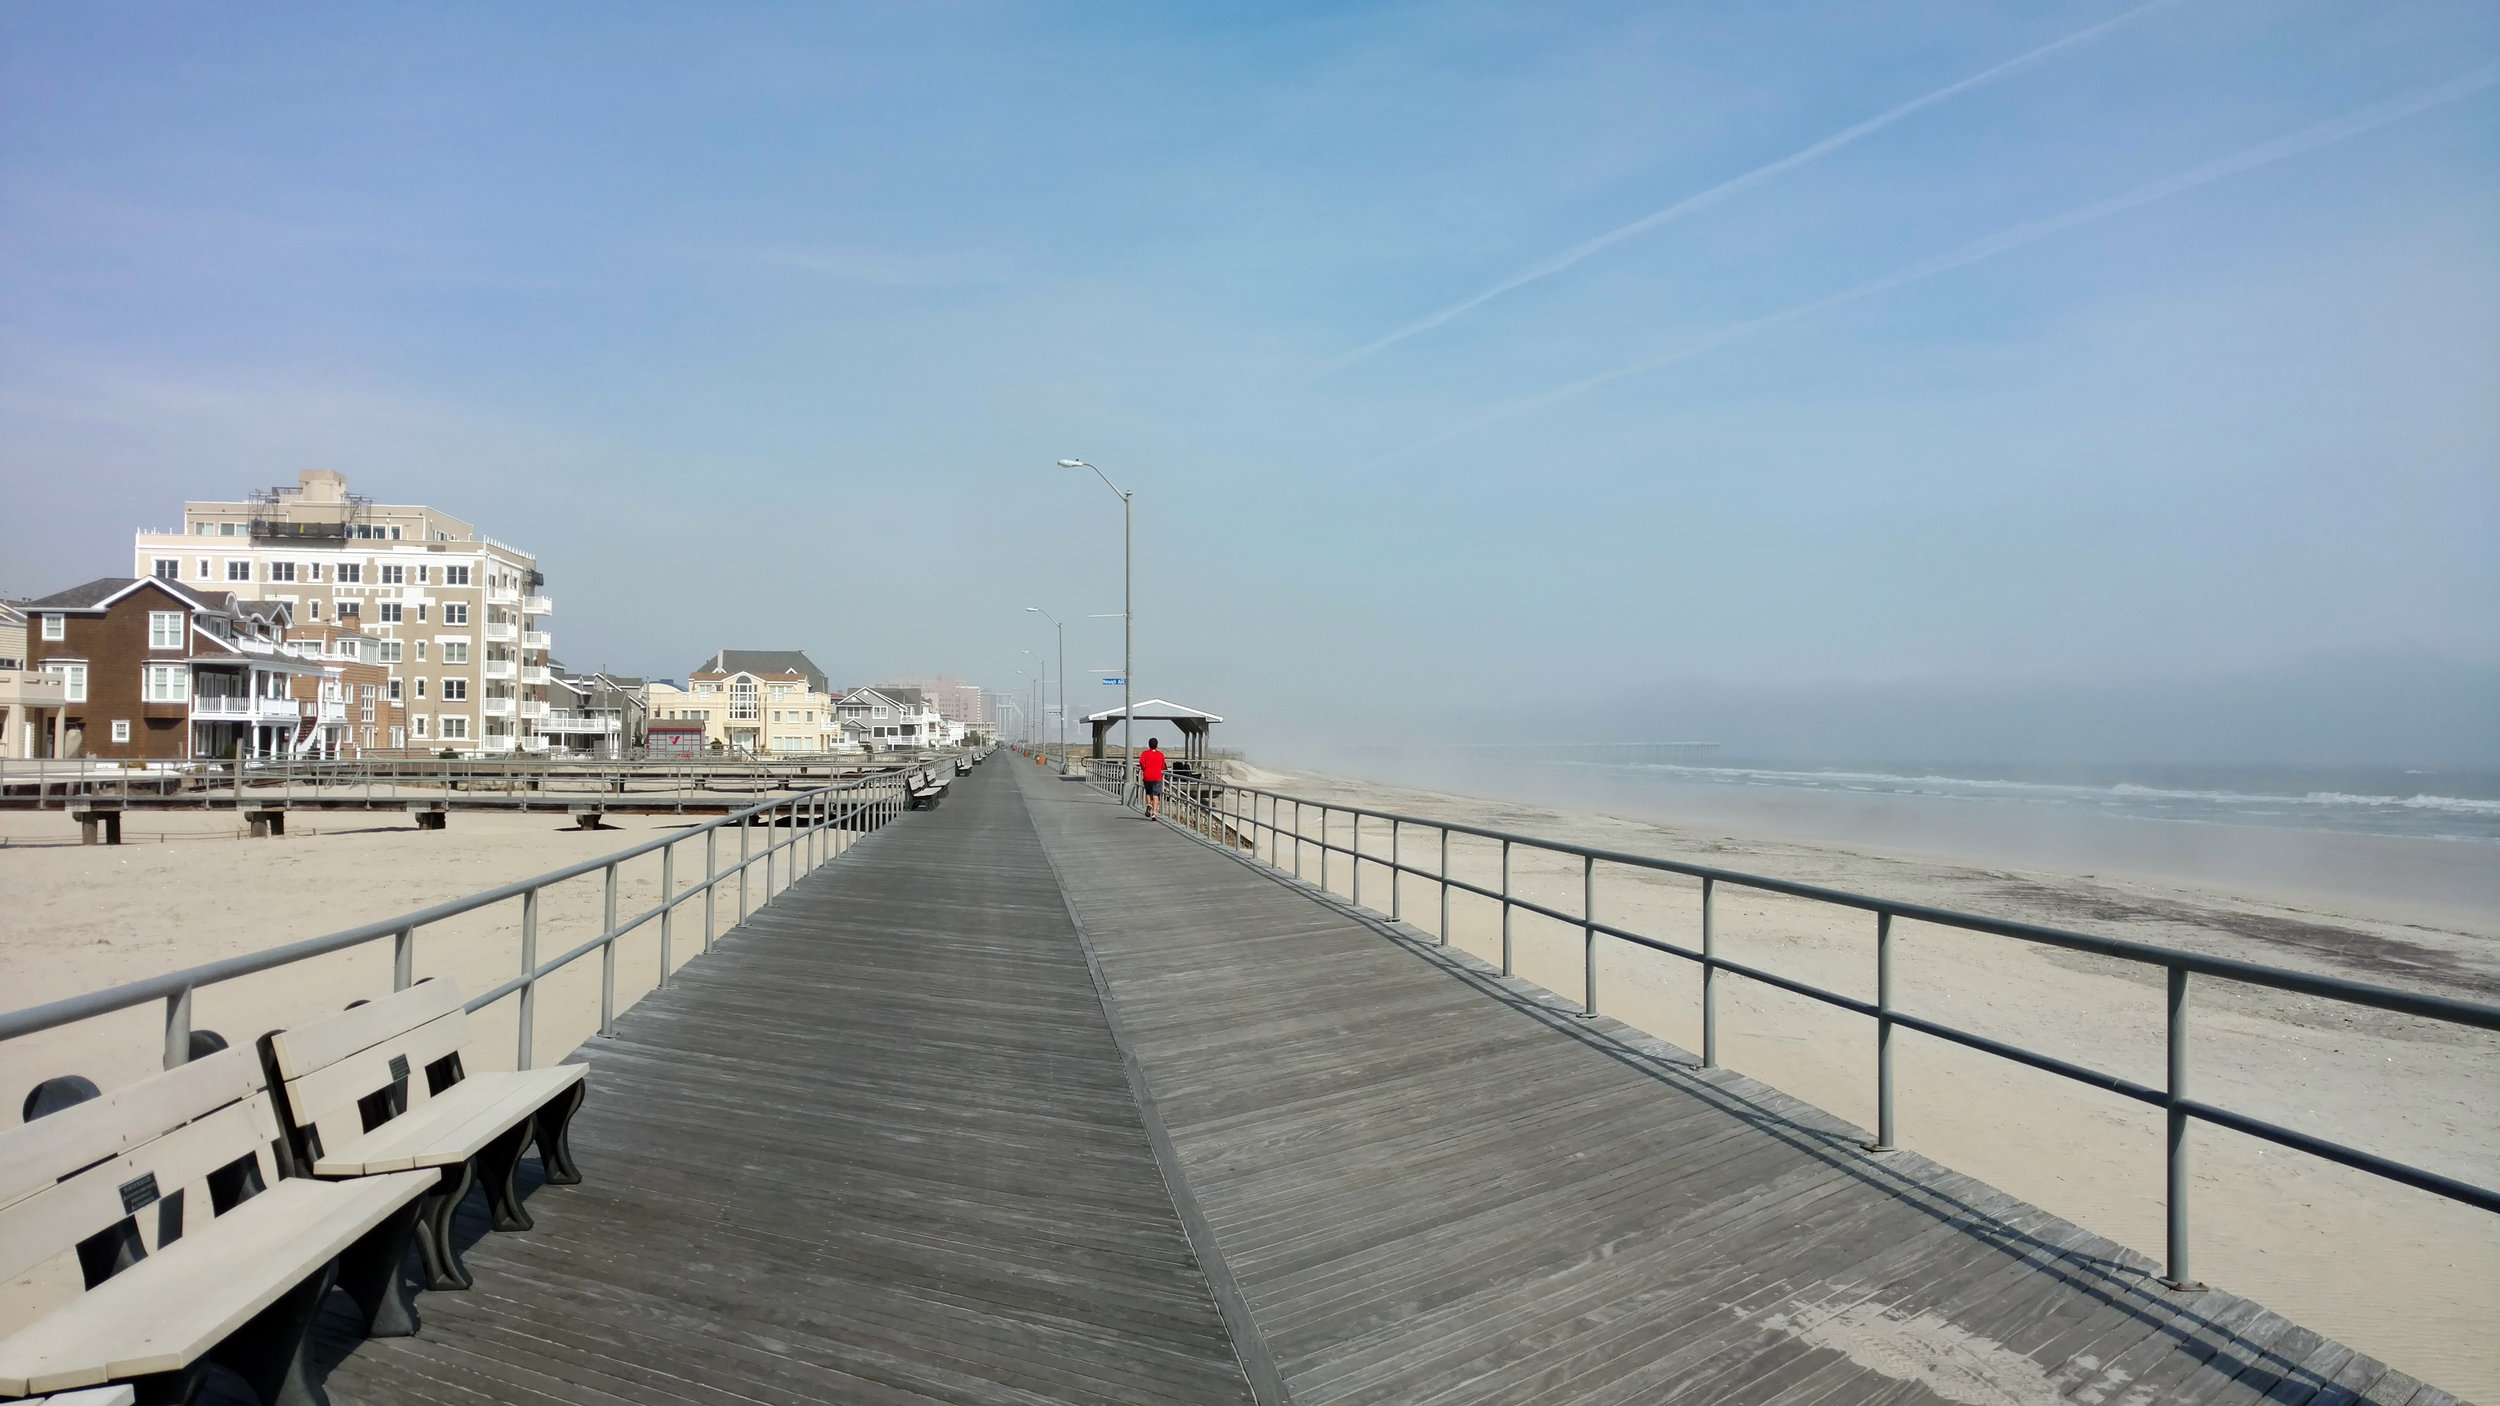 Boardwalk ventnor.jpg